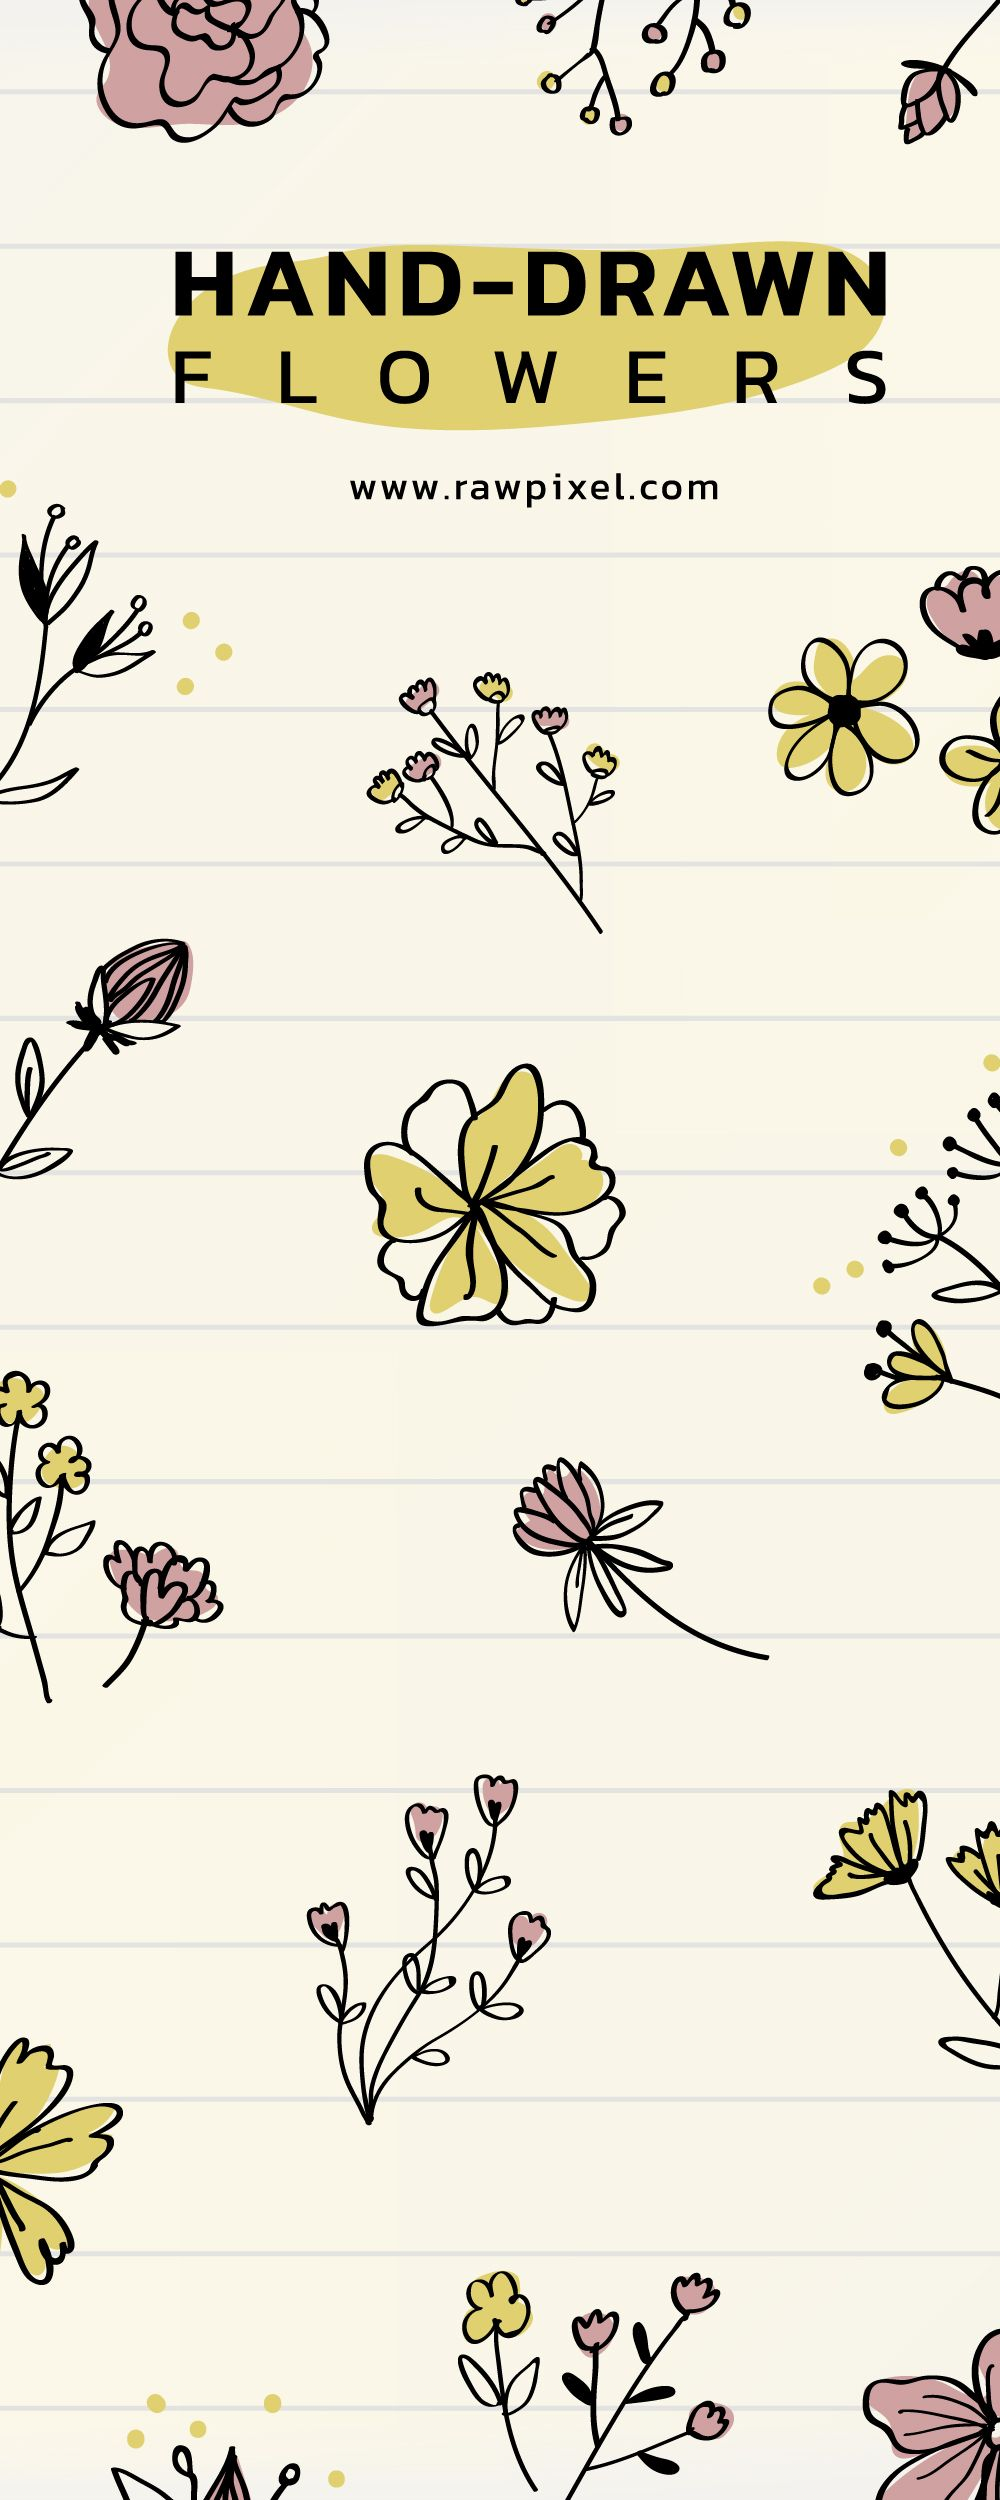 Download Beautiful Free And Premium Royalty Free Hand Drawn Flowers Vectors As Well As Stock Photos Psd M How To Draw Hands Flower Drawing Hand Drawn Flowers